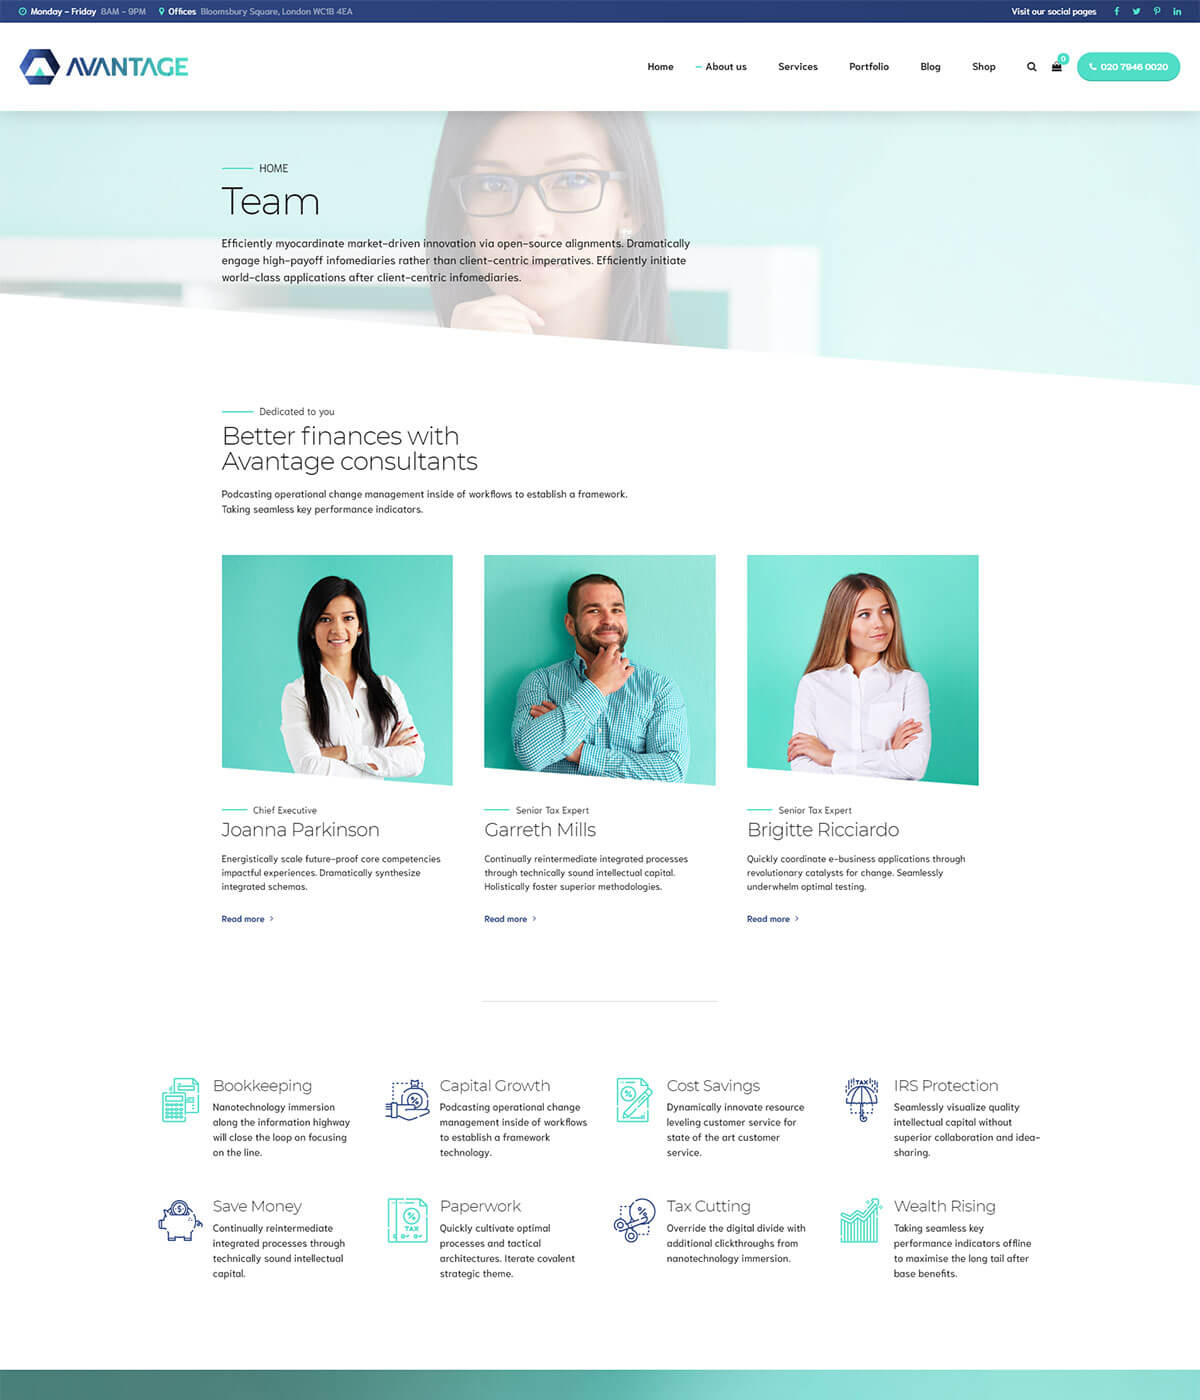 http://avantage.bold-themes.com/wp-content/uploads/2019/05/accountant-03-team.jpg